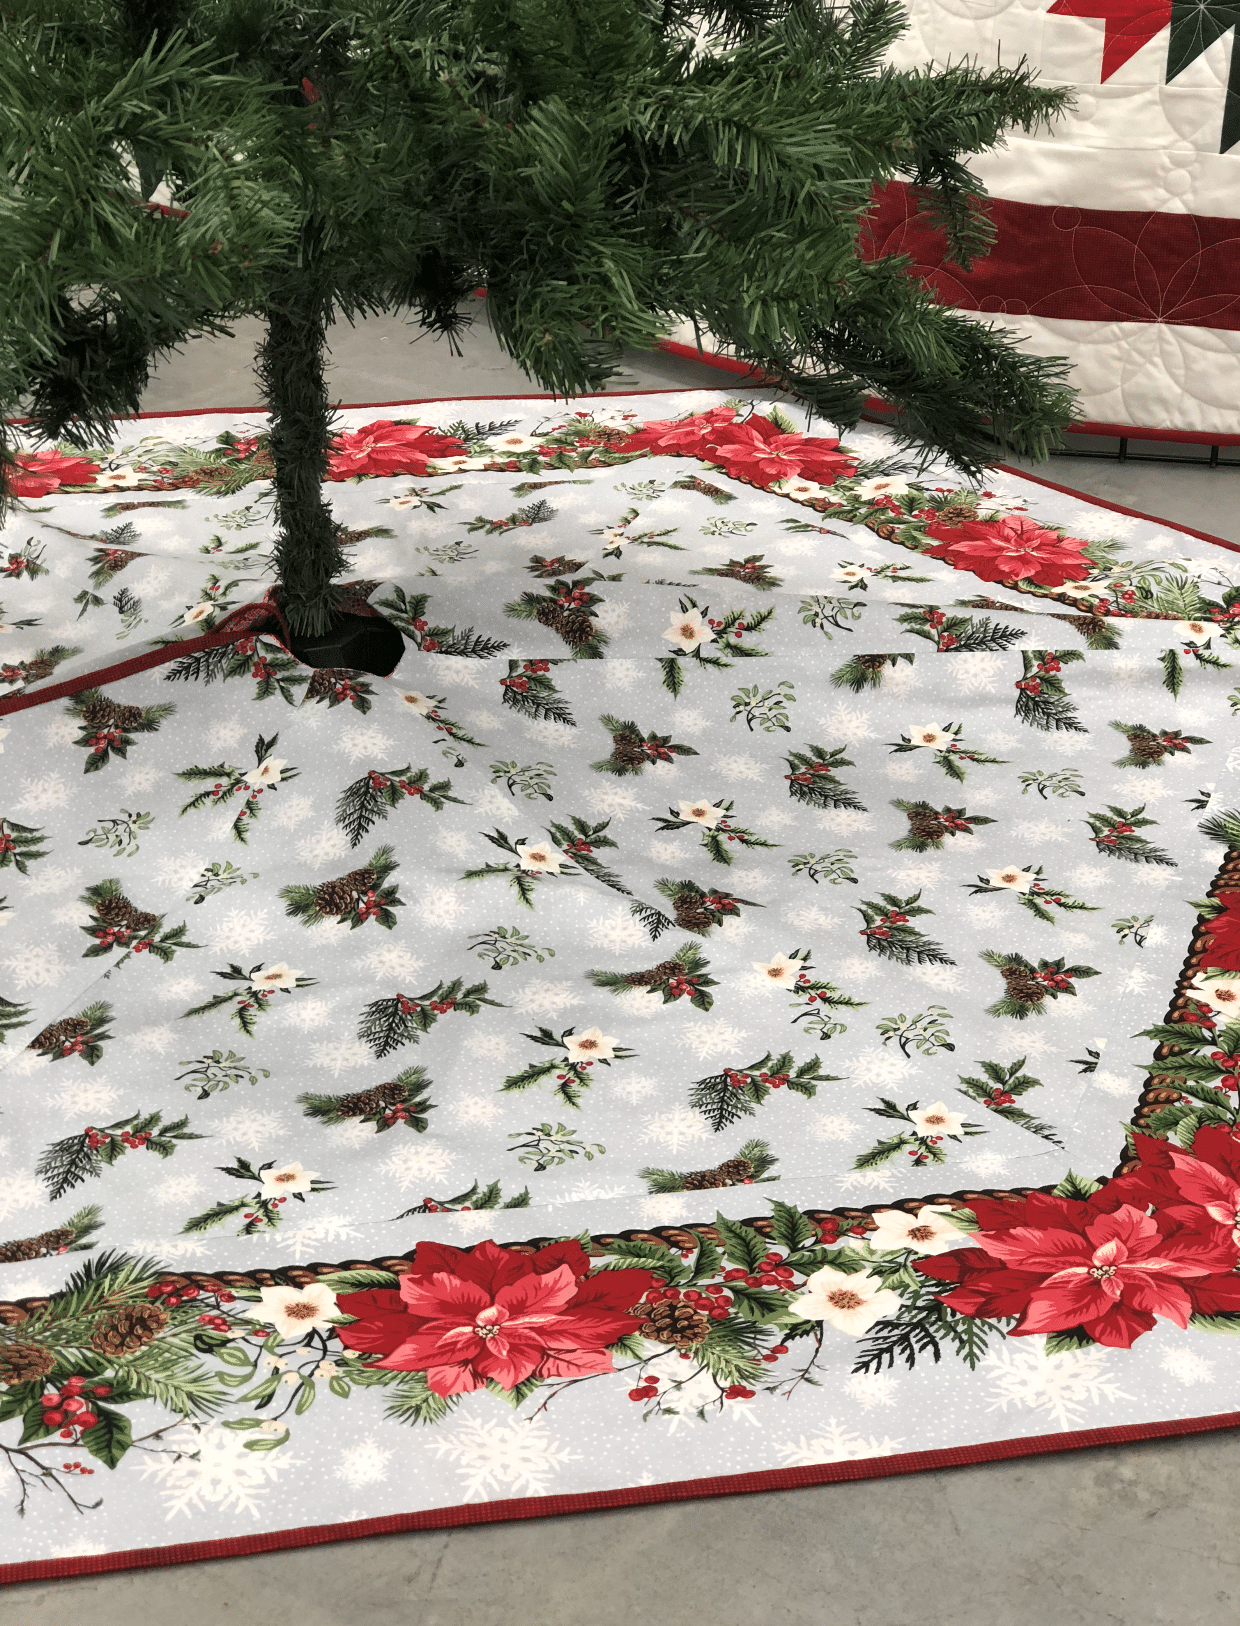 TREE SKIRT with BORDERS 10/25 & 11/1 10AM-4PM - Authorized Vac & Sew